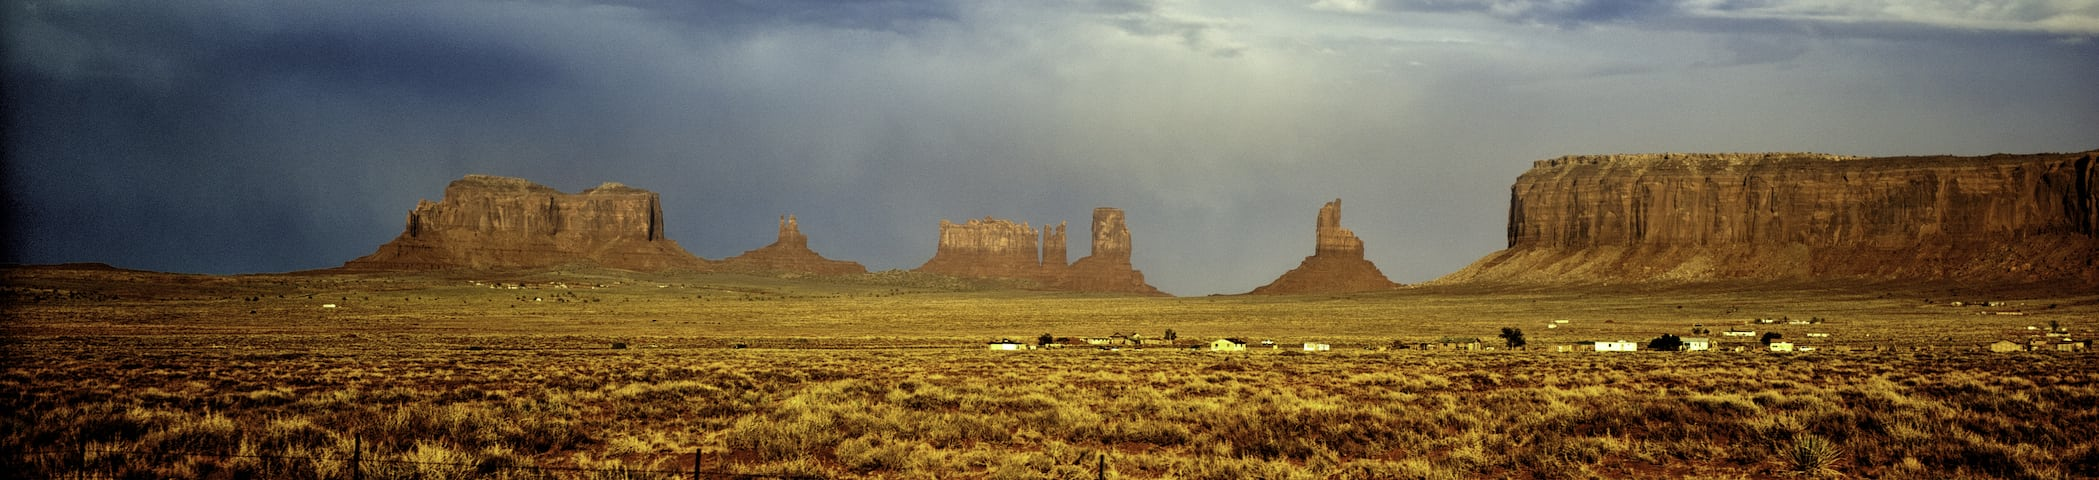 The Real Monument Valley